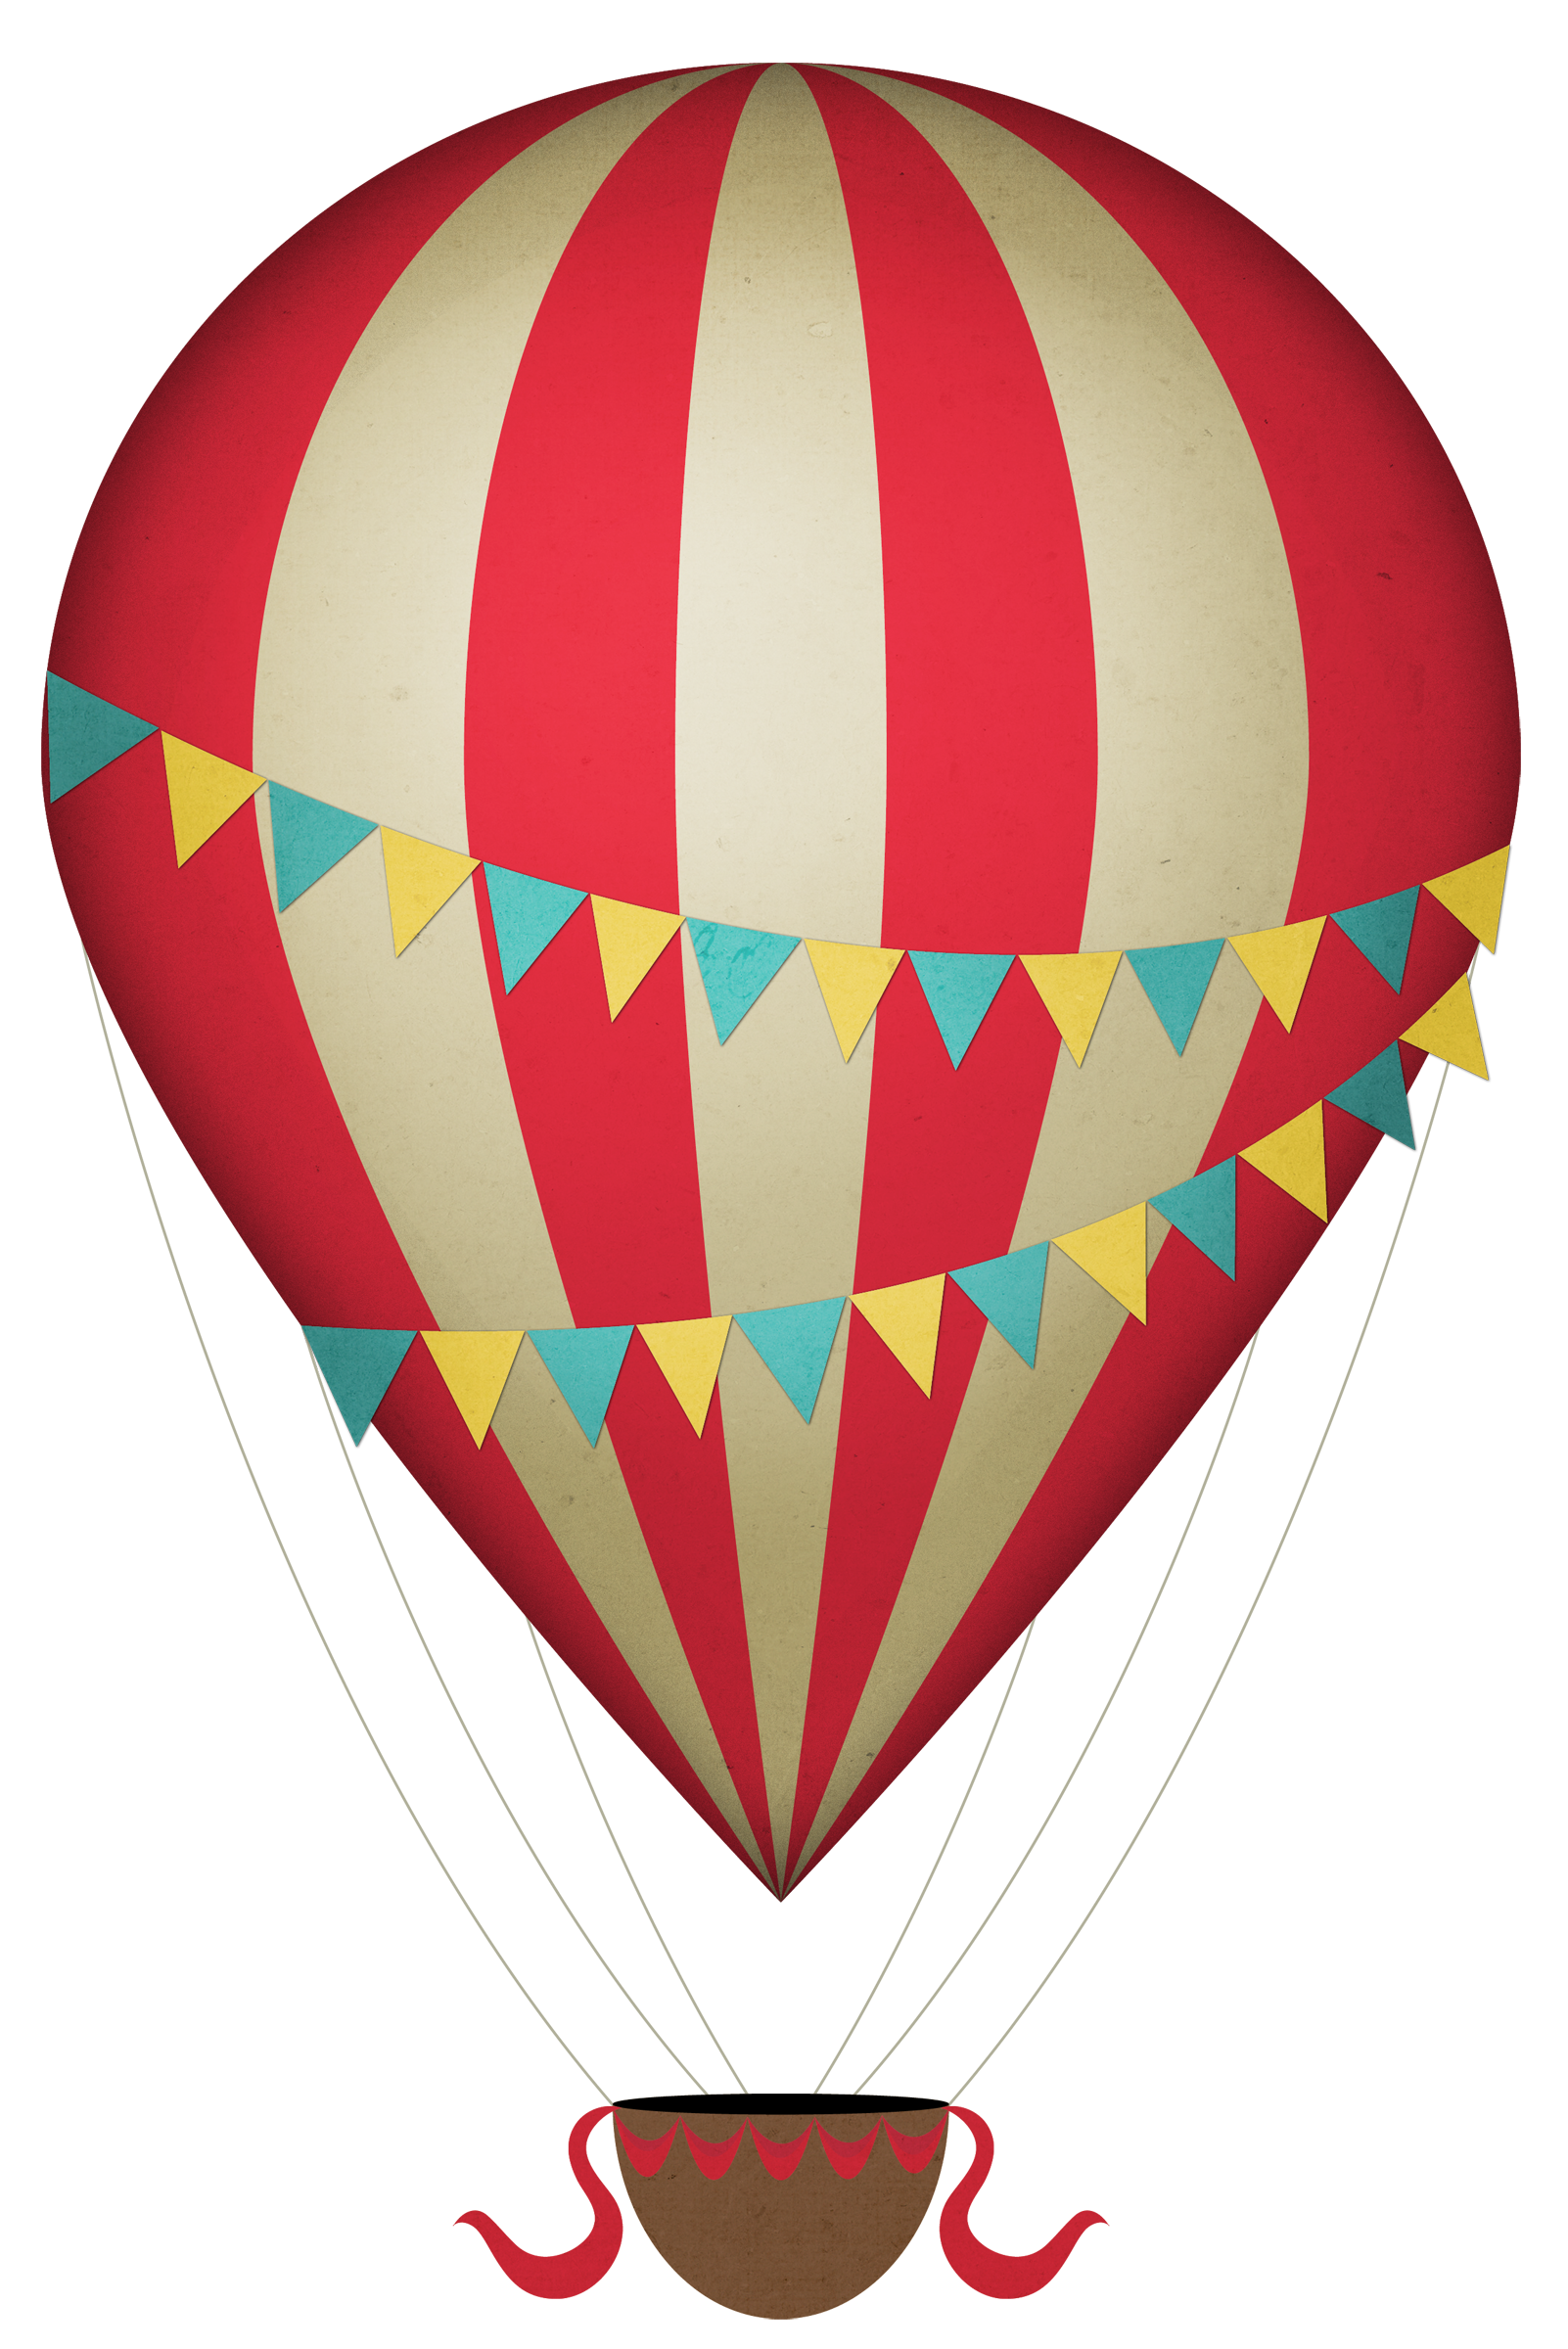 vector royalty free library Arcade clipart vintage carnival games. Hot air balloon transportations